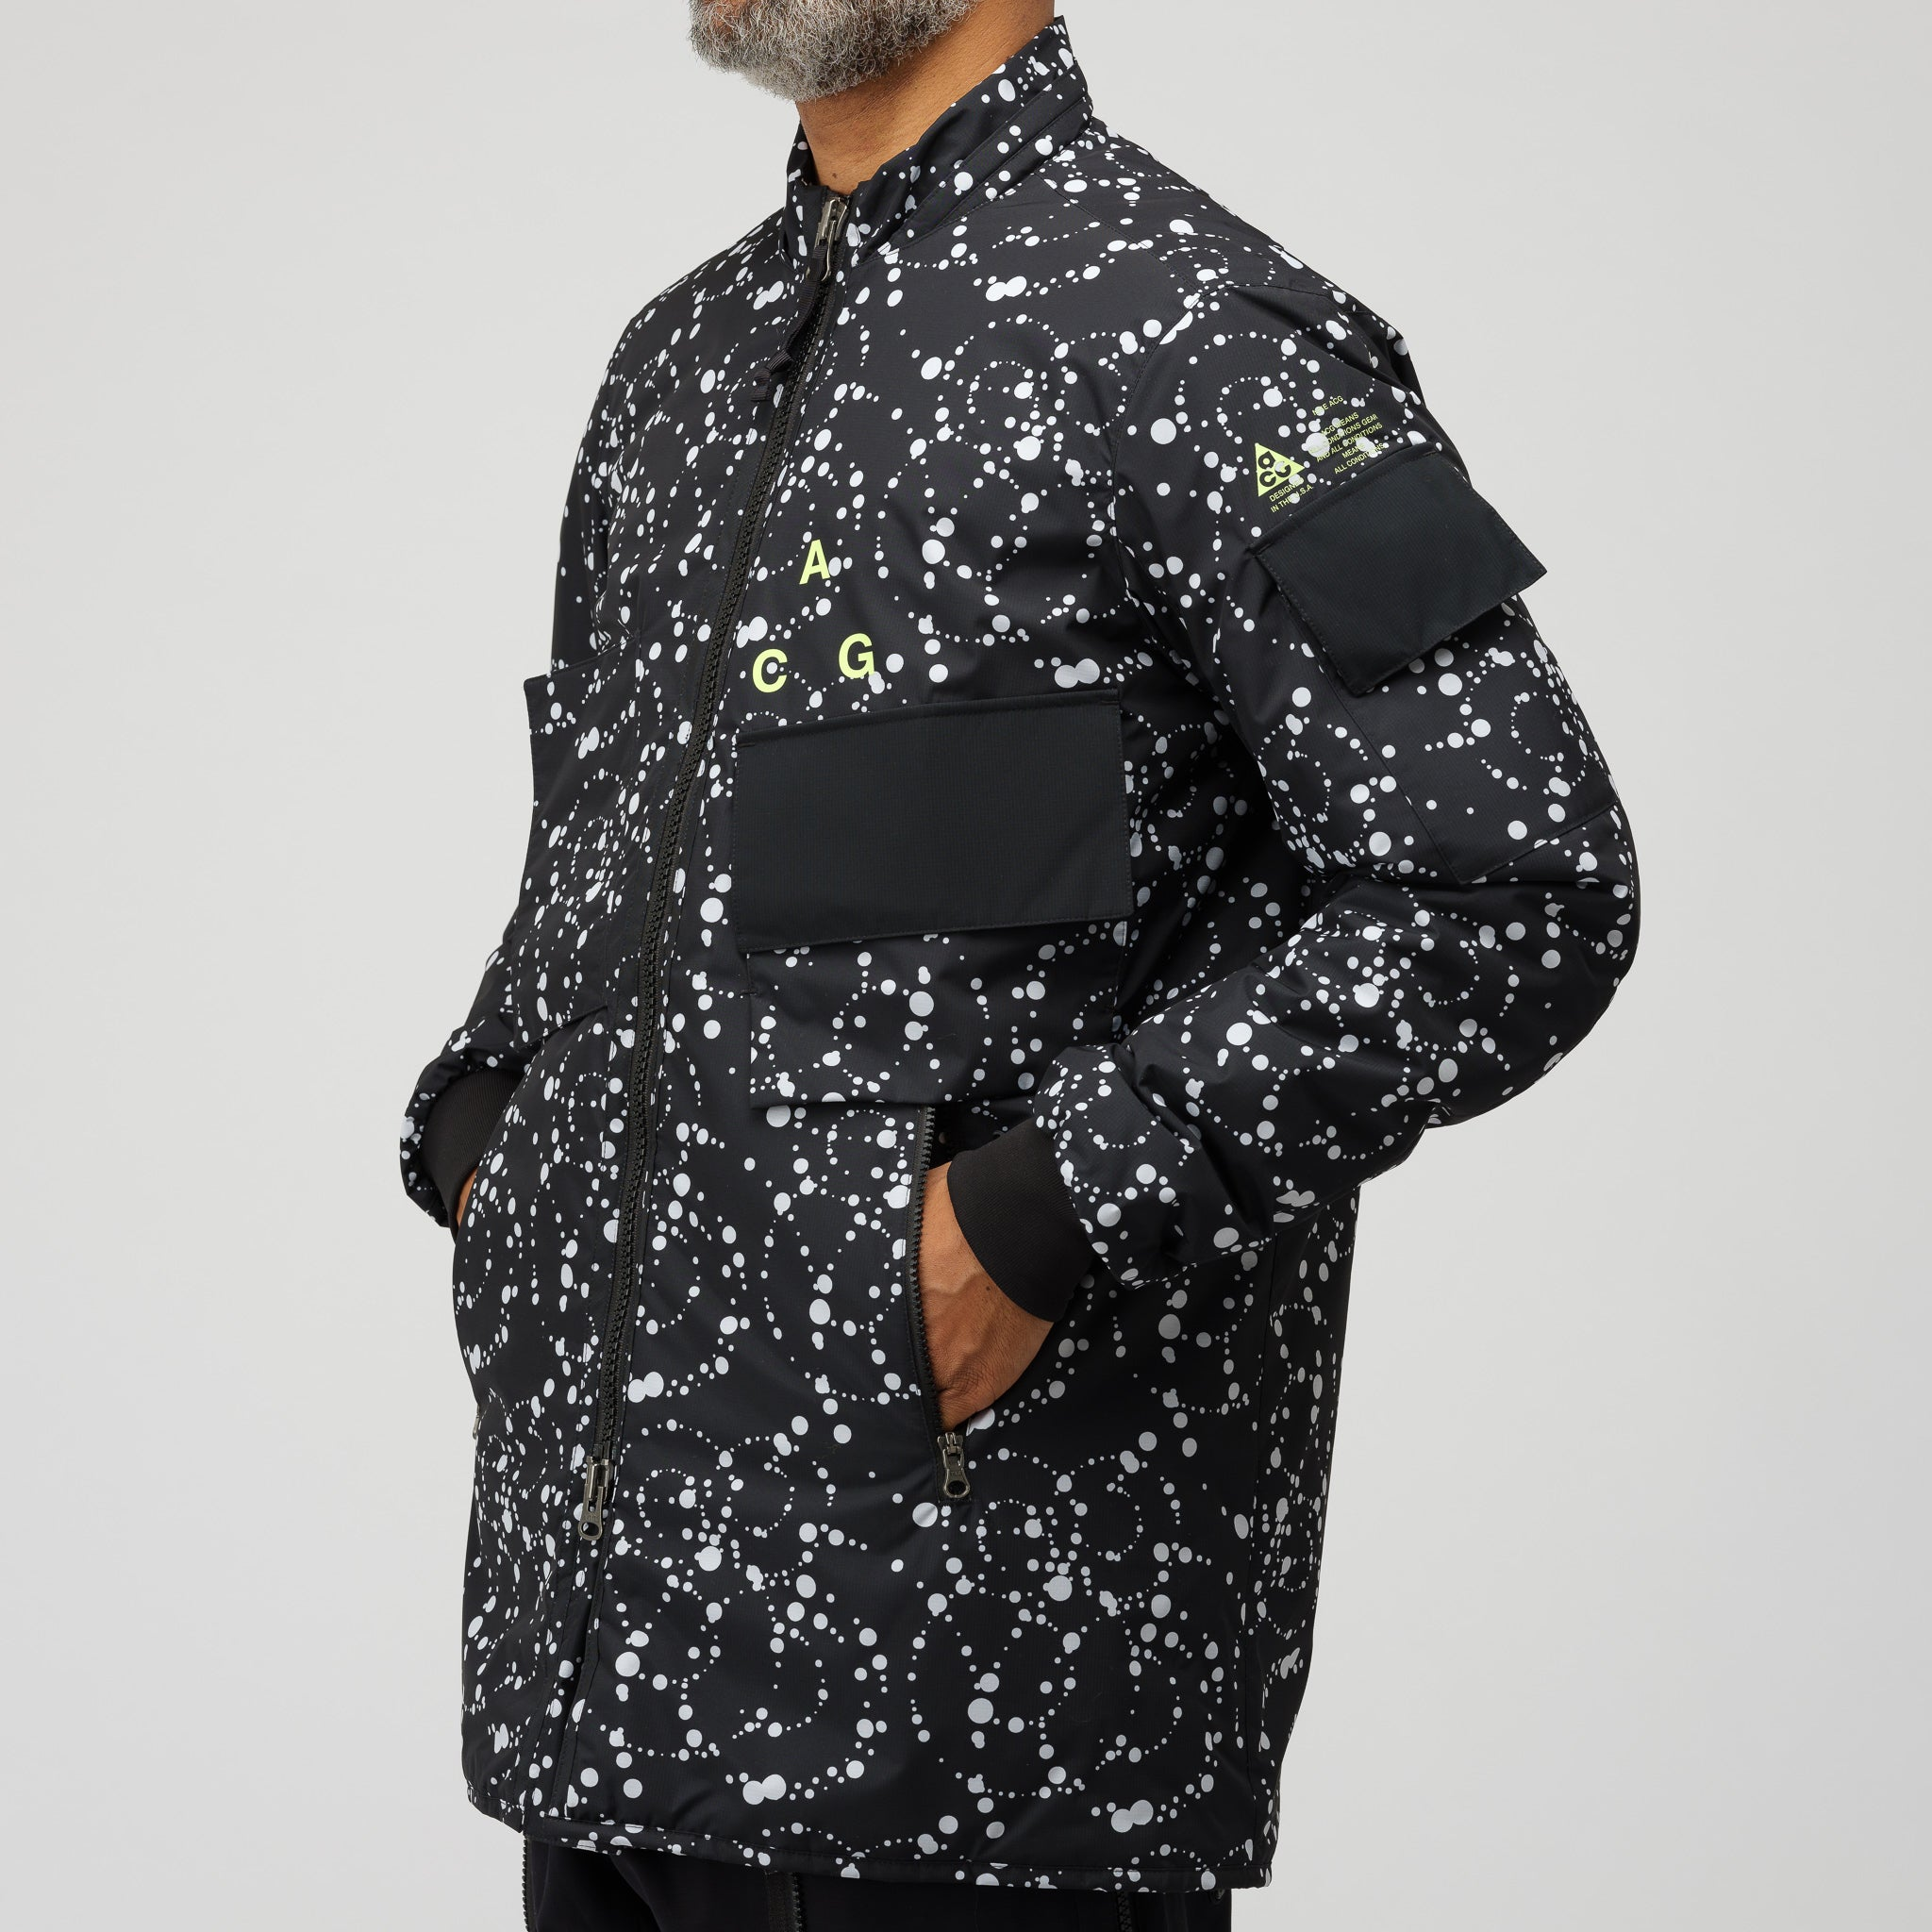 ACG Insulated Soft Shell Jacket in Black